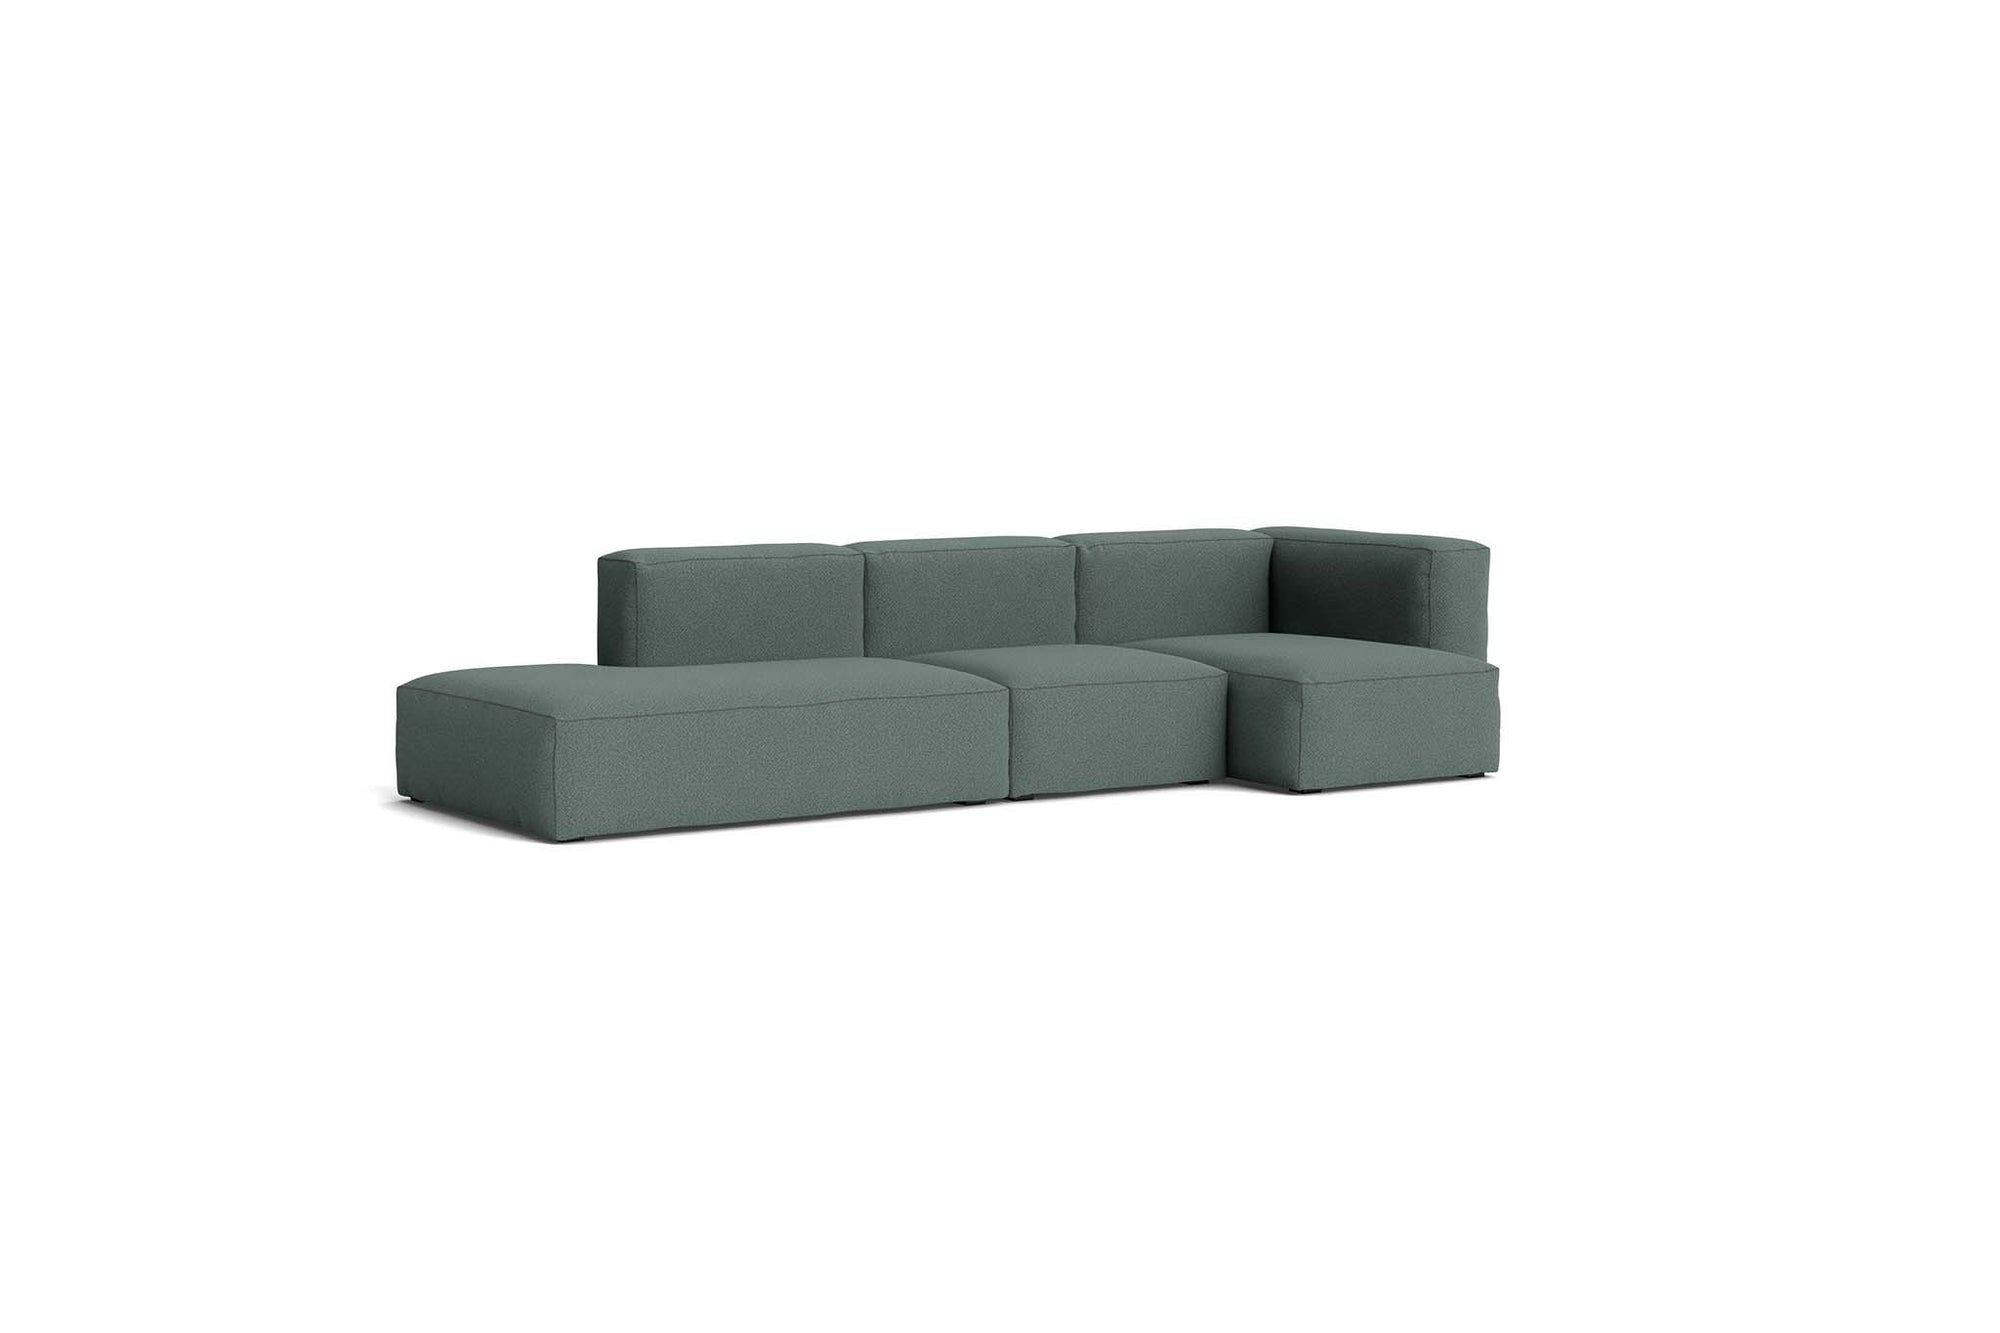 HAY - Mags Soft Sofa - 3 Seater - Combination 3 with Right Armrest